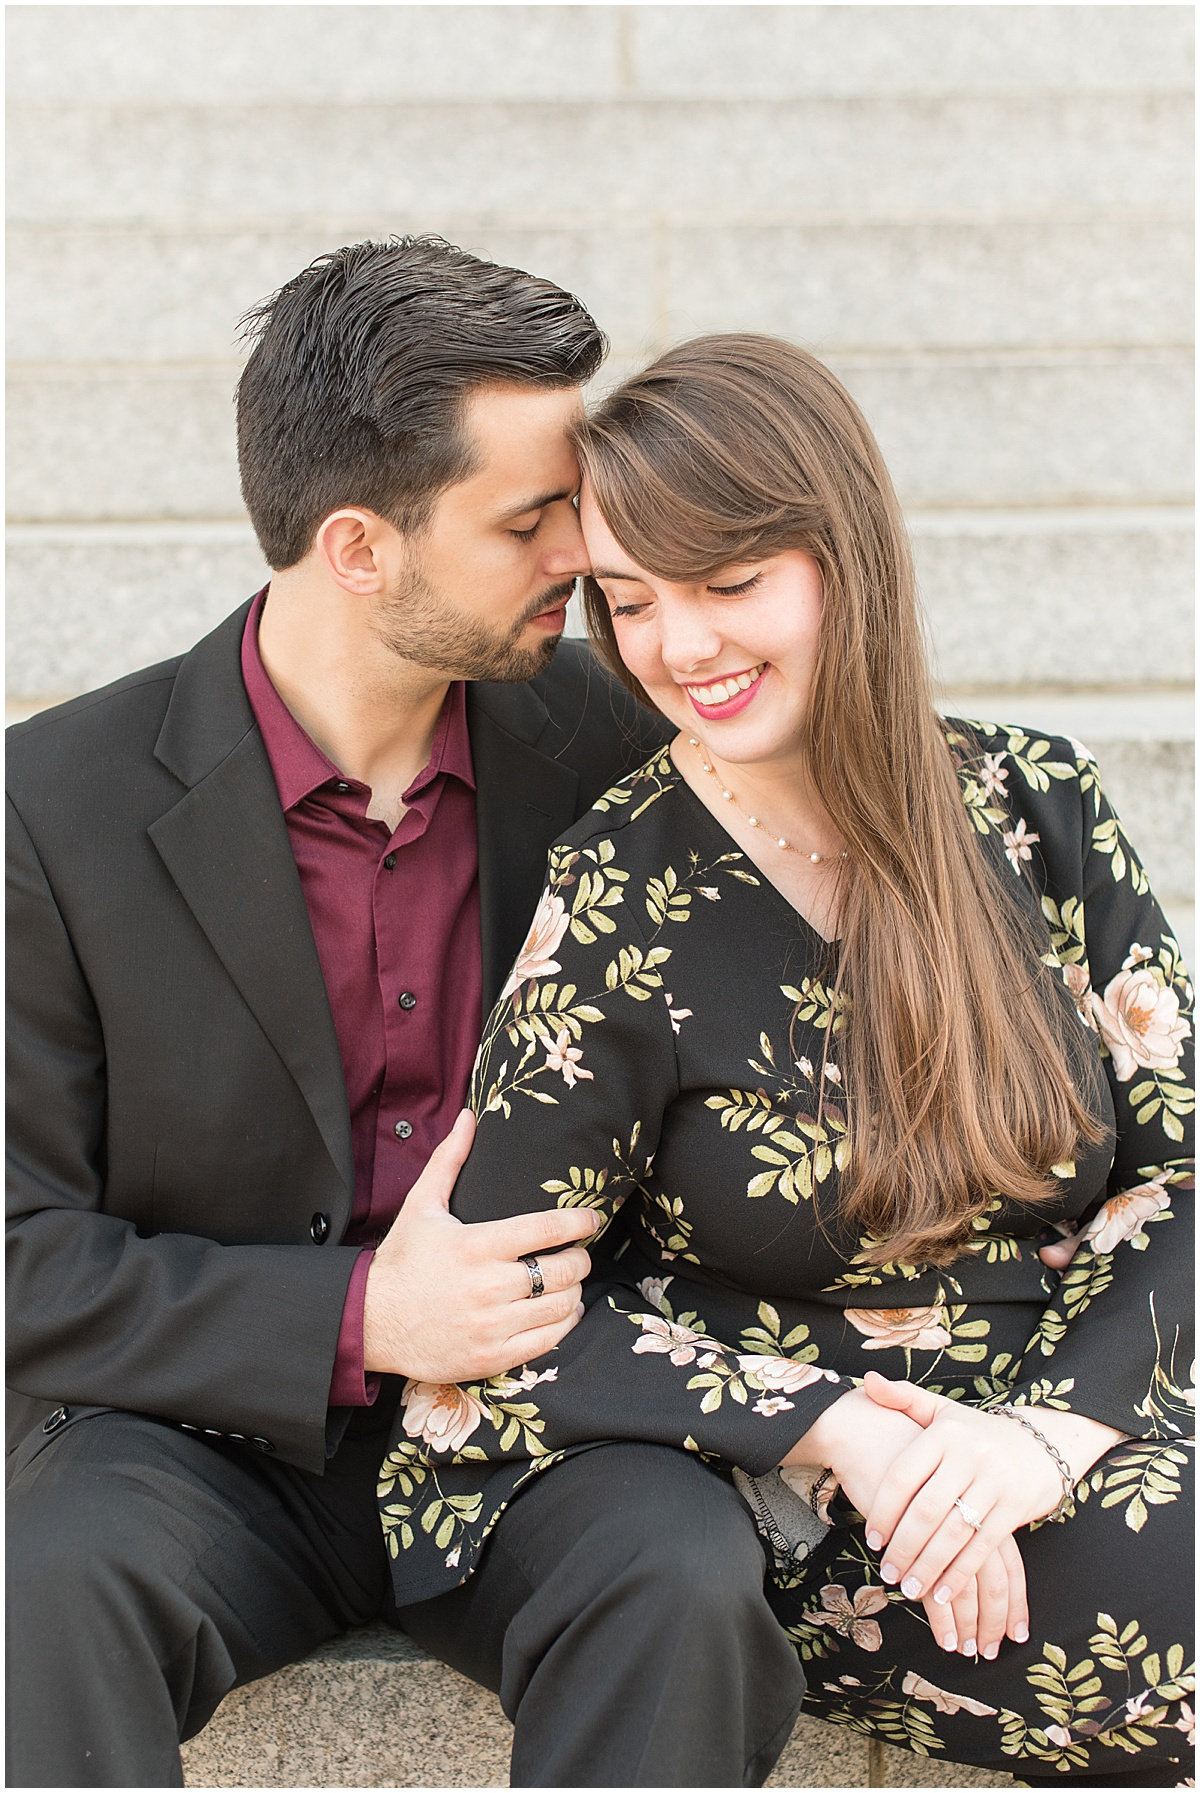 Nick Ballester and Madeline Pingel Engagement Session in Downtown Lafayette Indiana20.jpg